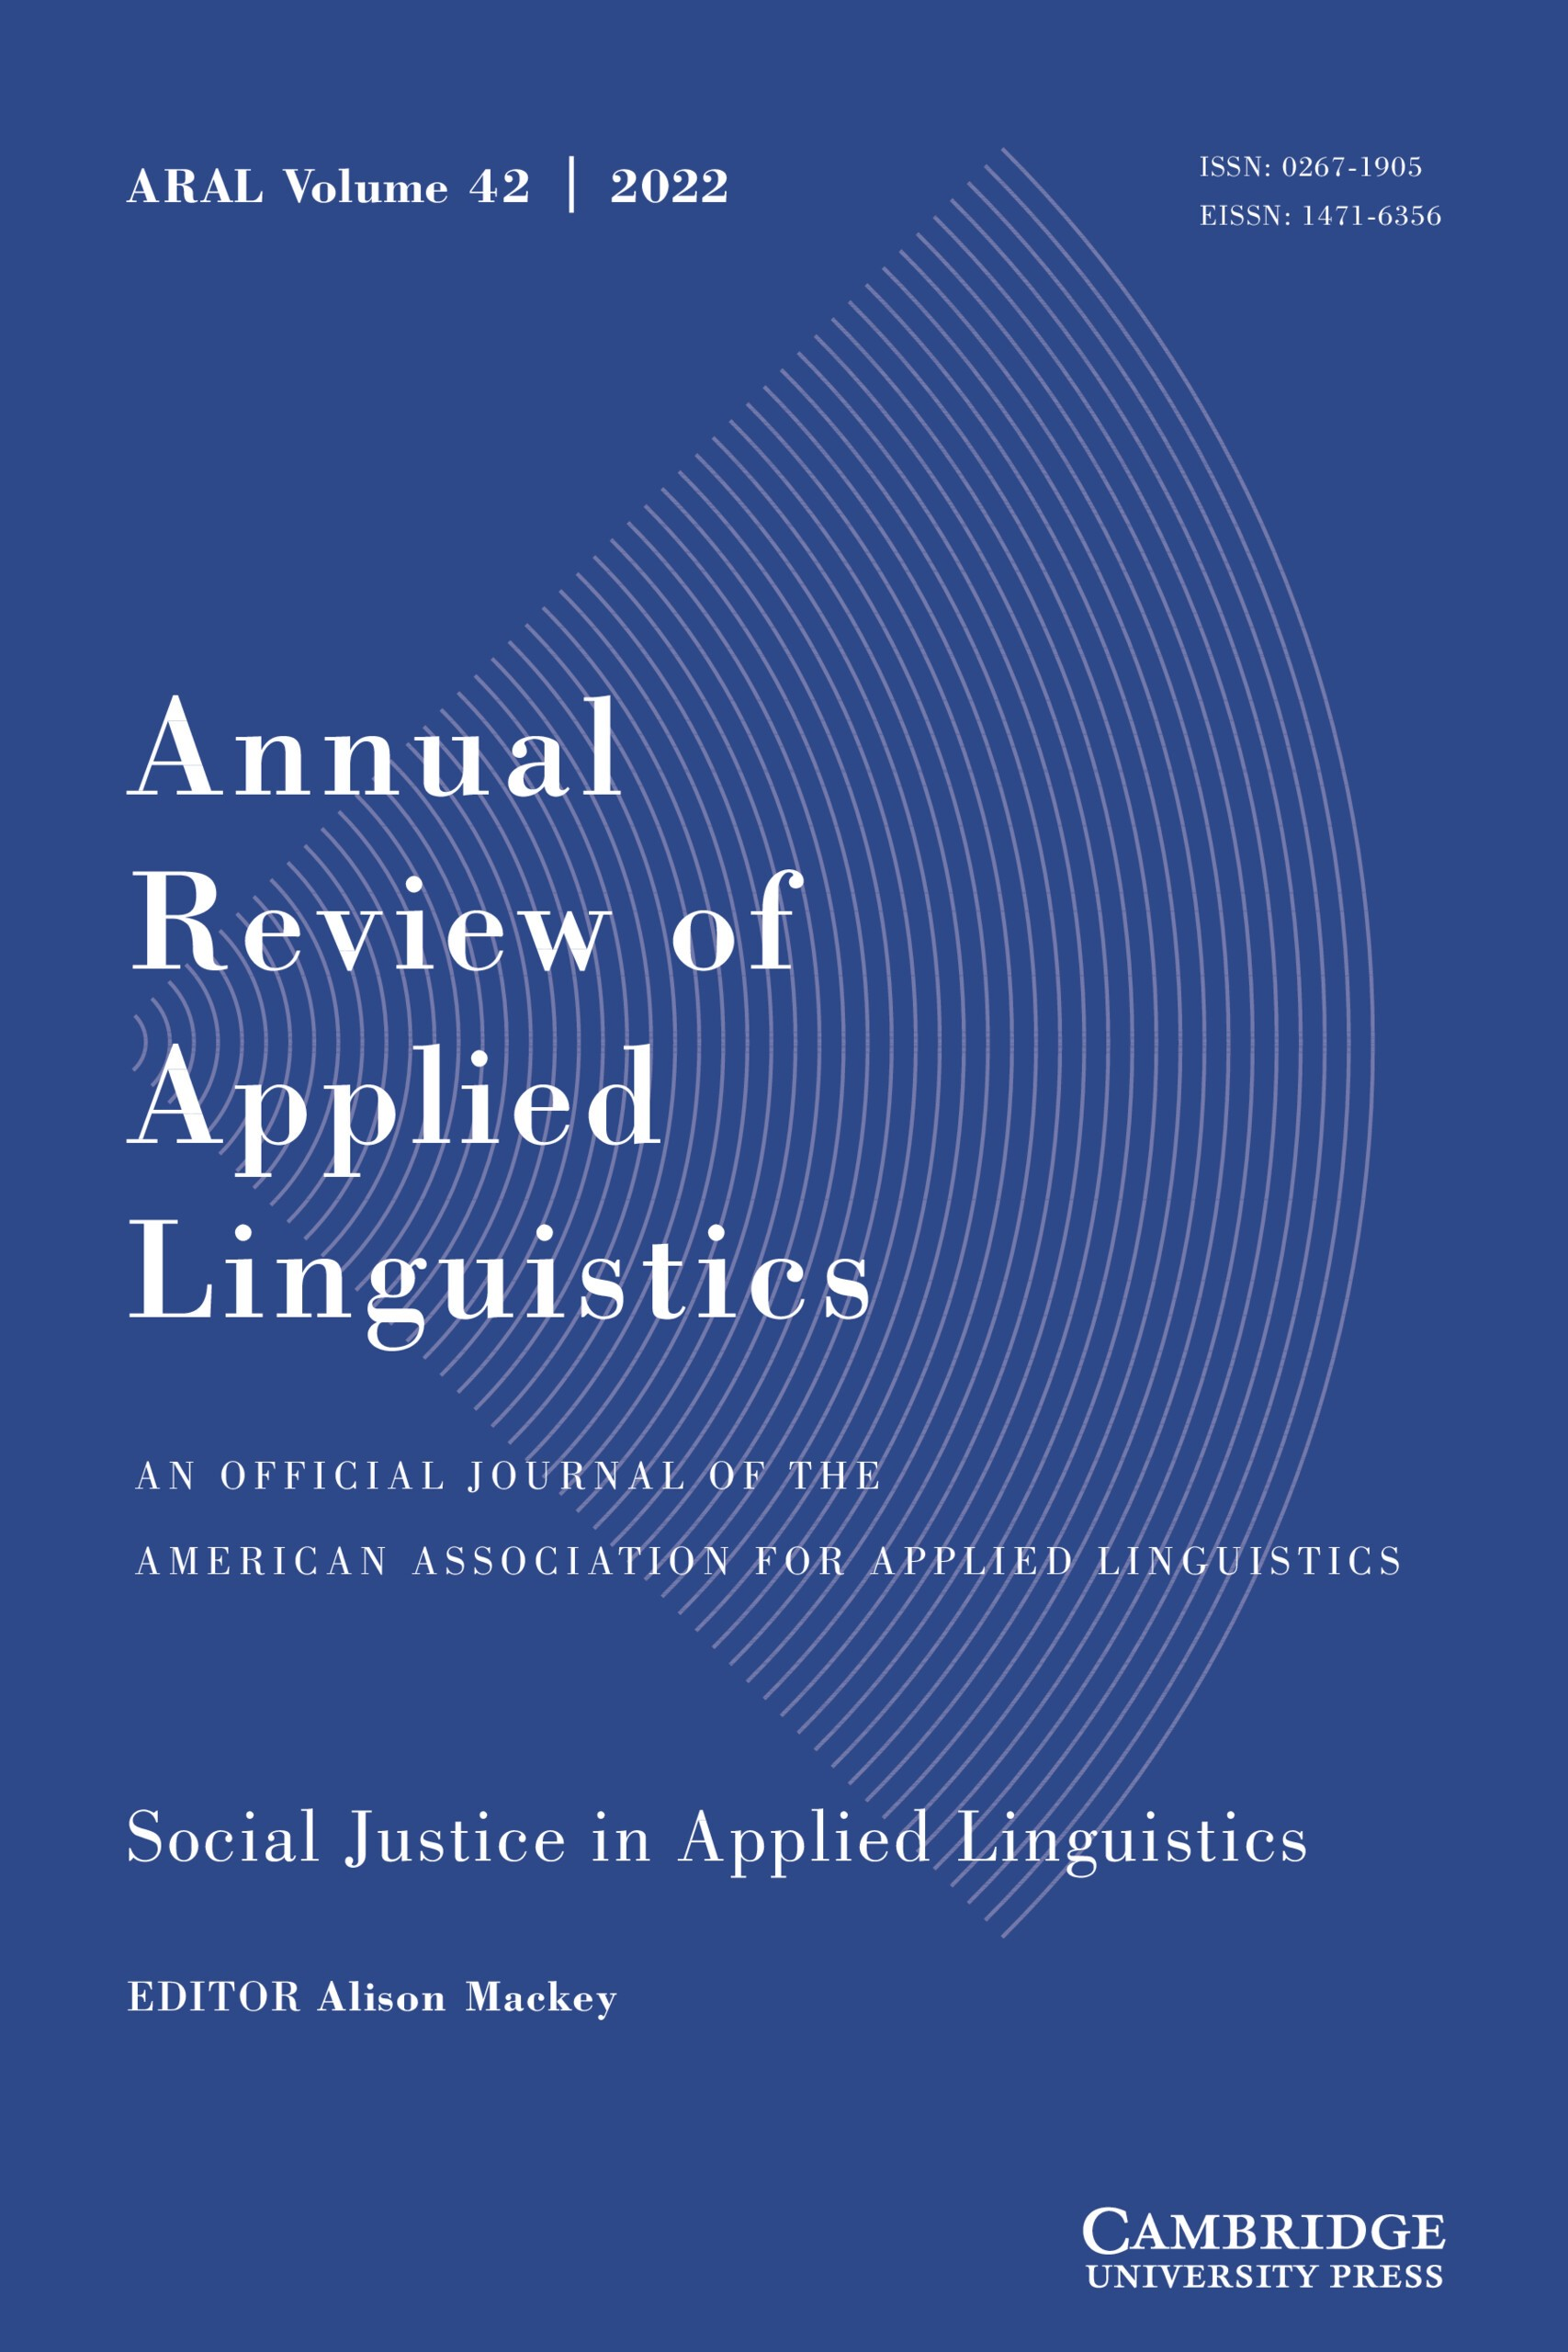 Annual Review of Applied Linguistics